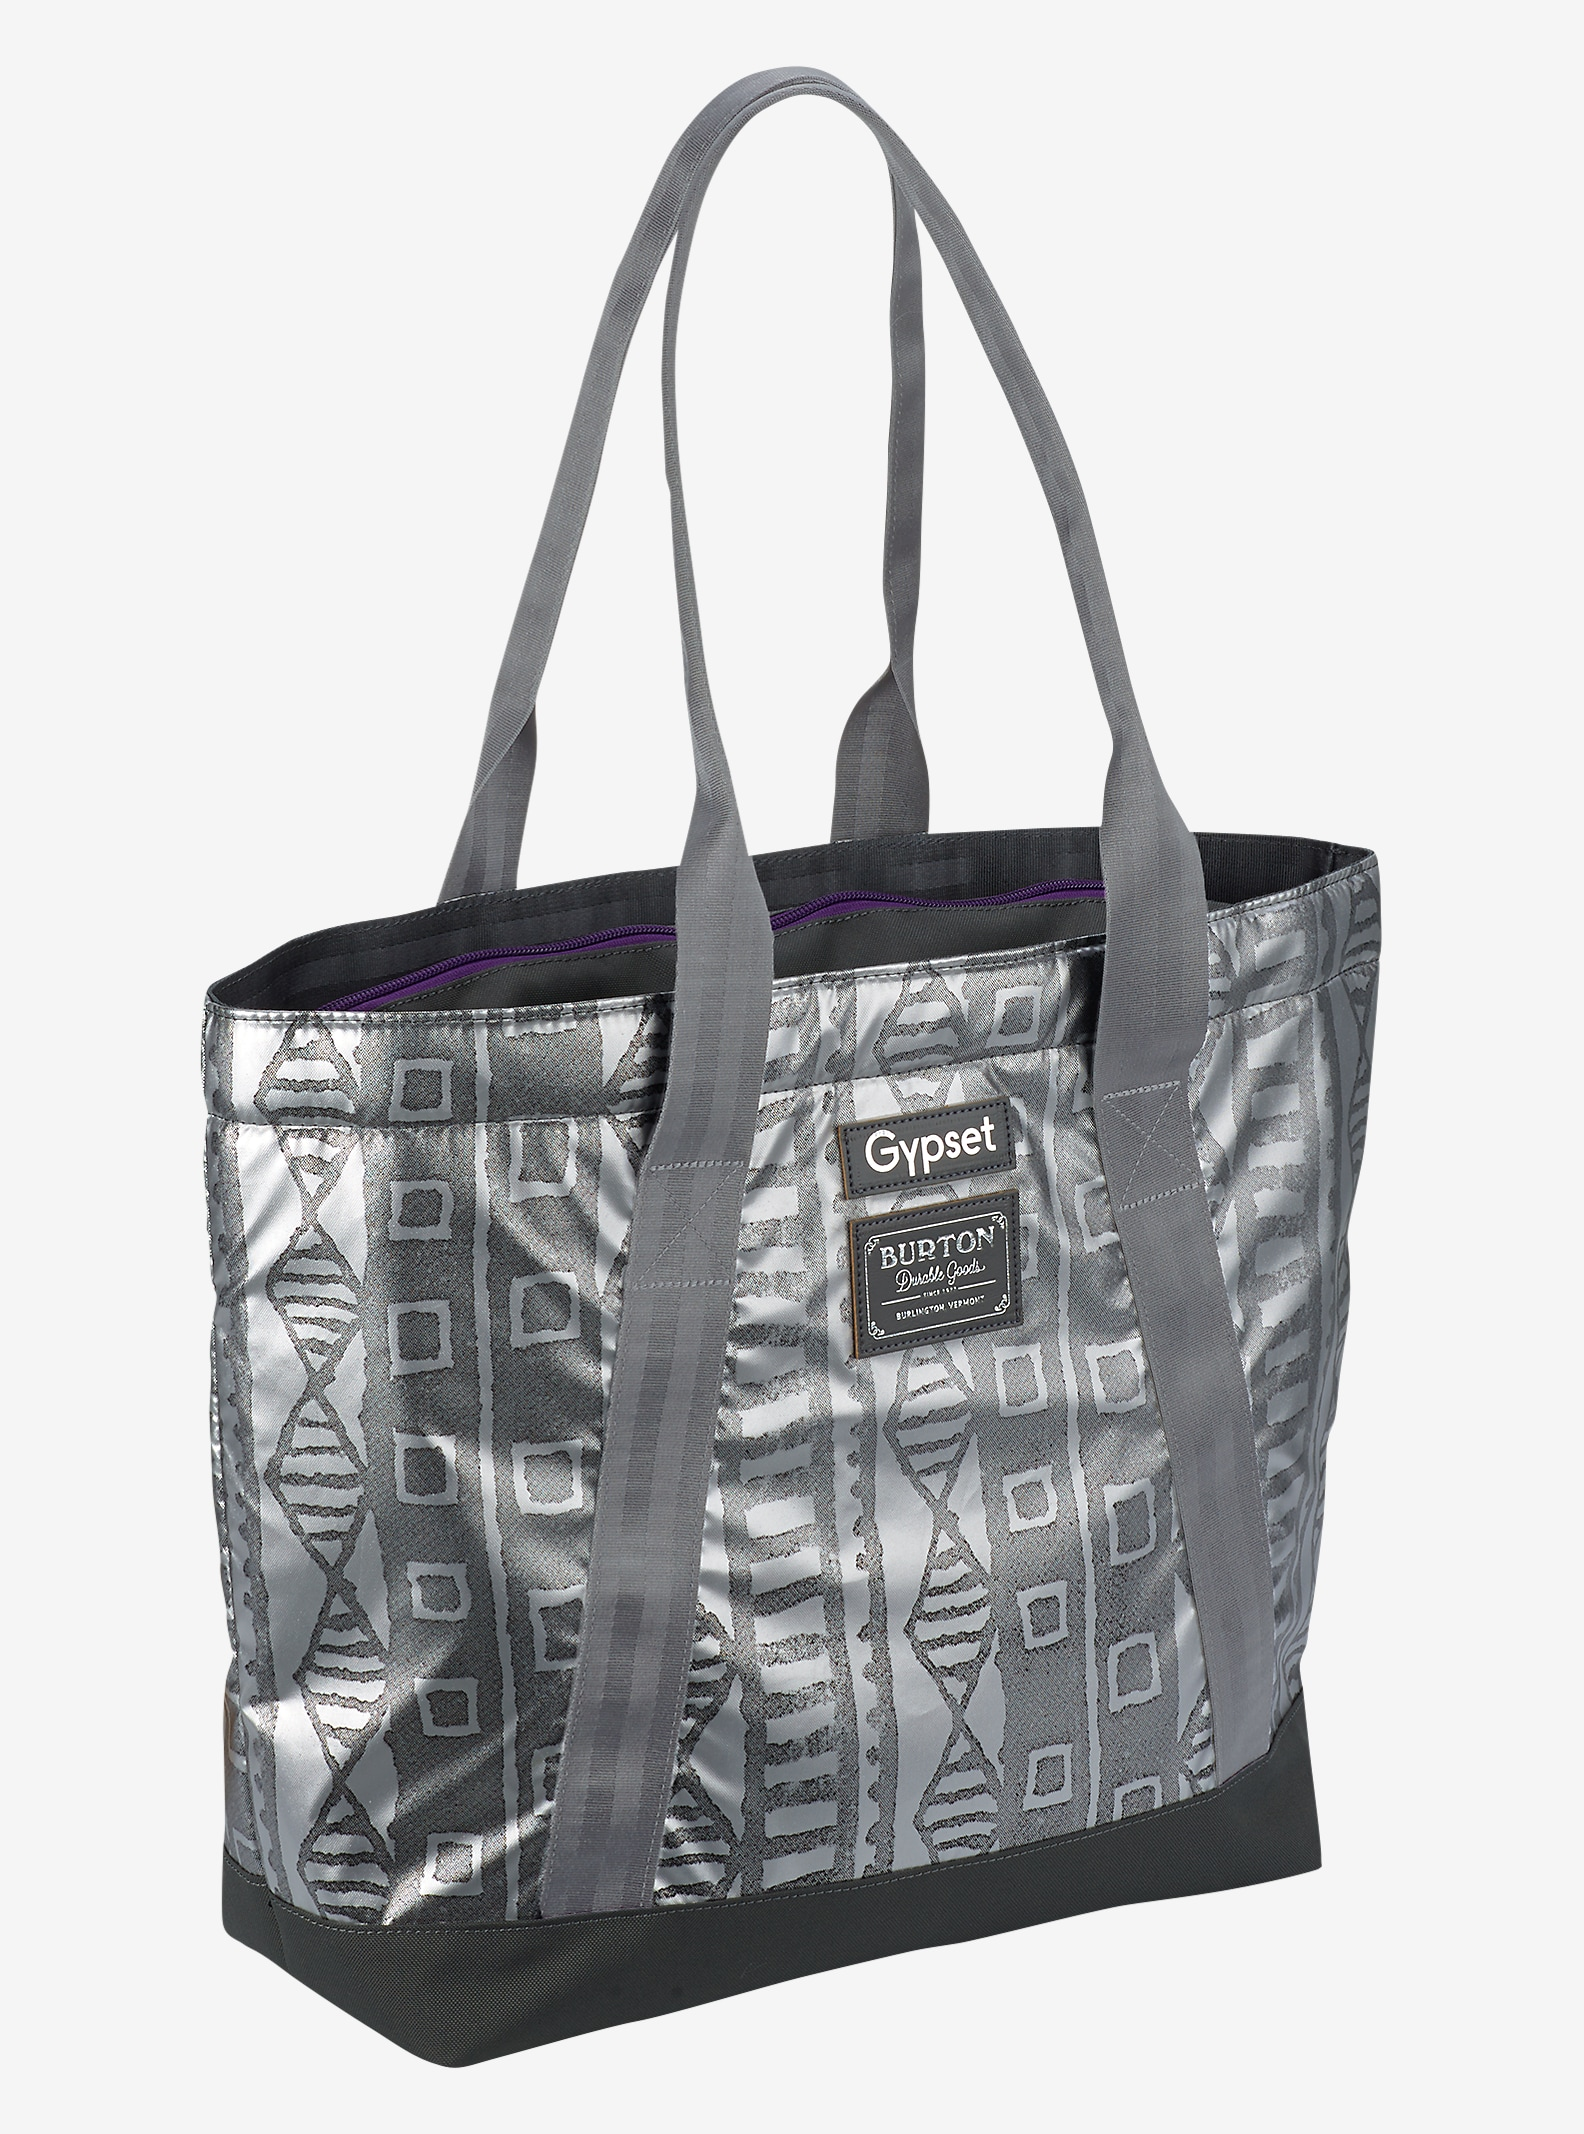 Burton x Gypset Sofie Tote shown in Galactic Mudcloth